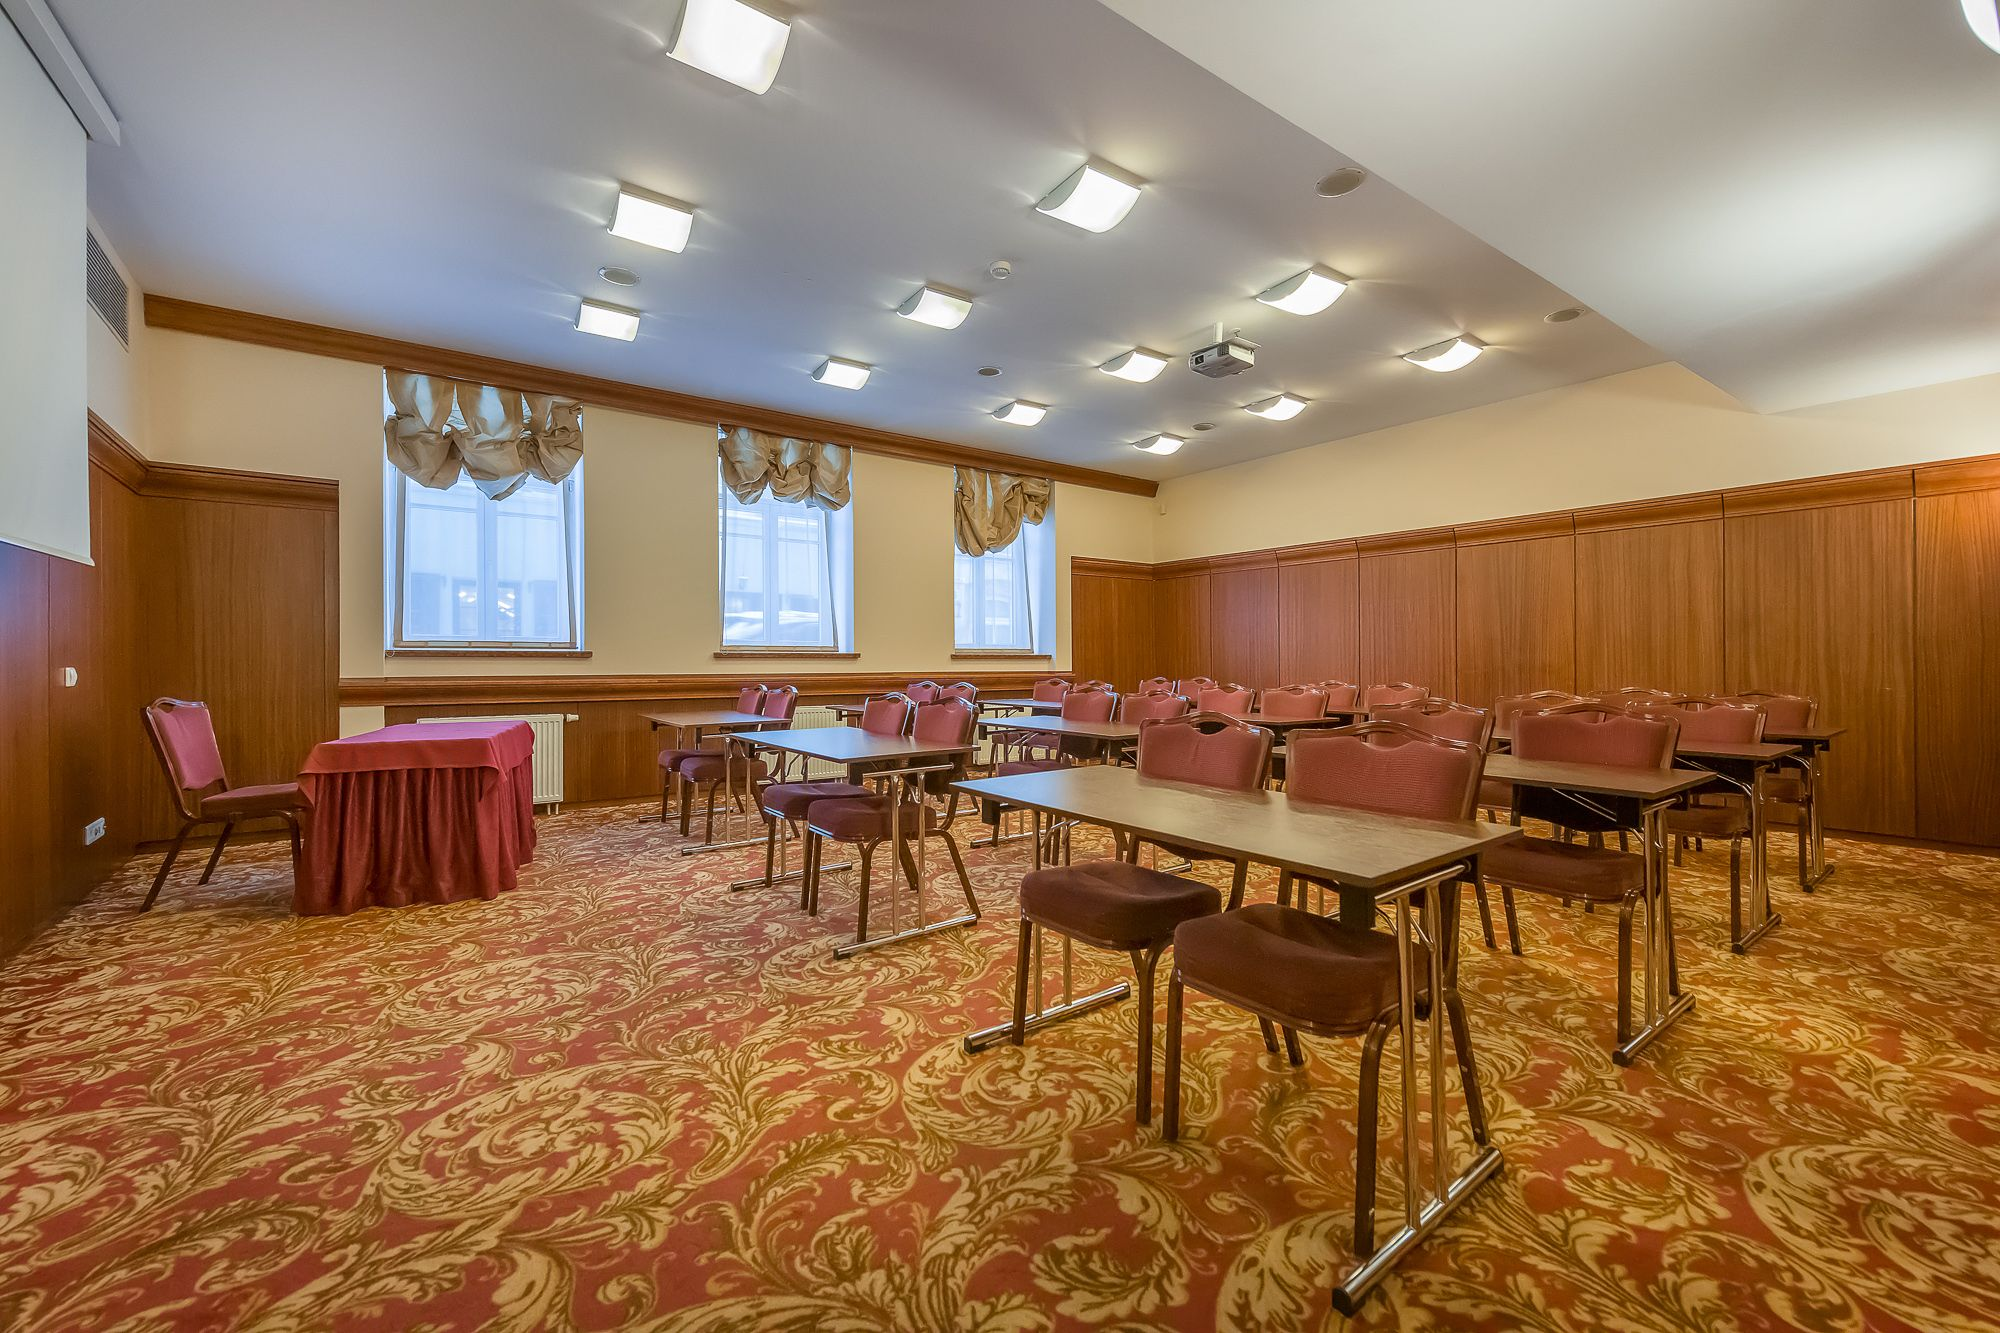 Artis Centrum Hotels Conference Room - Nabucco